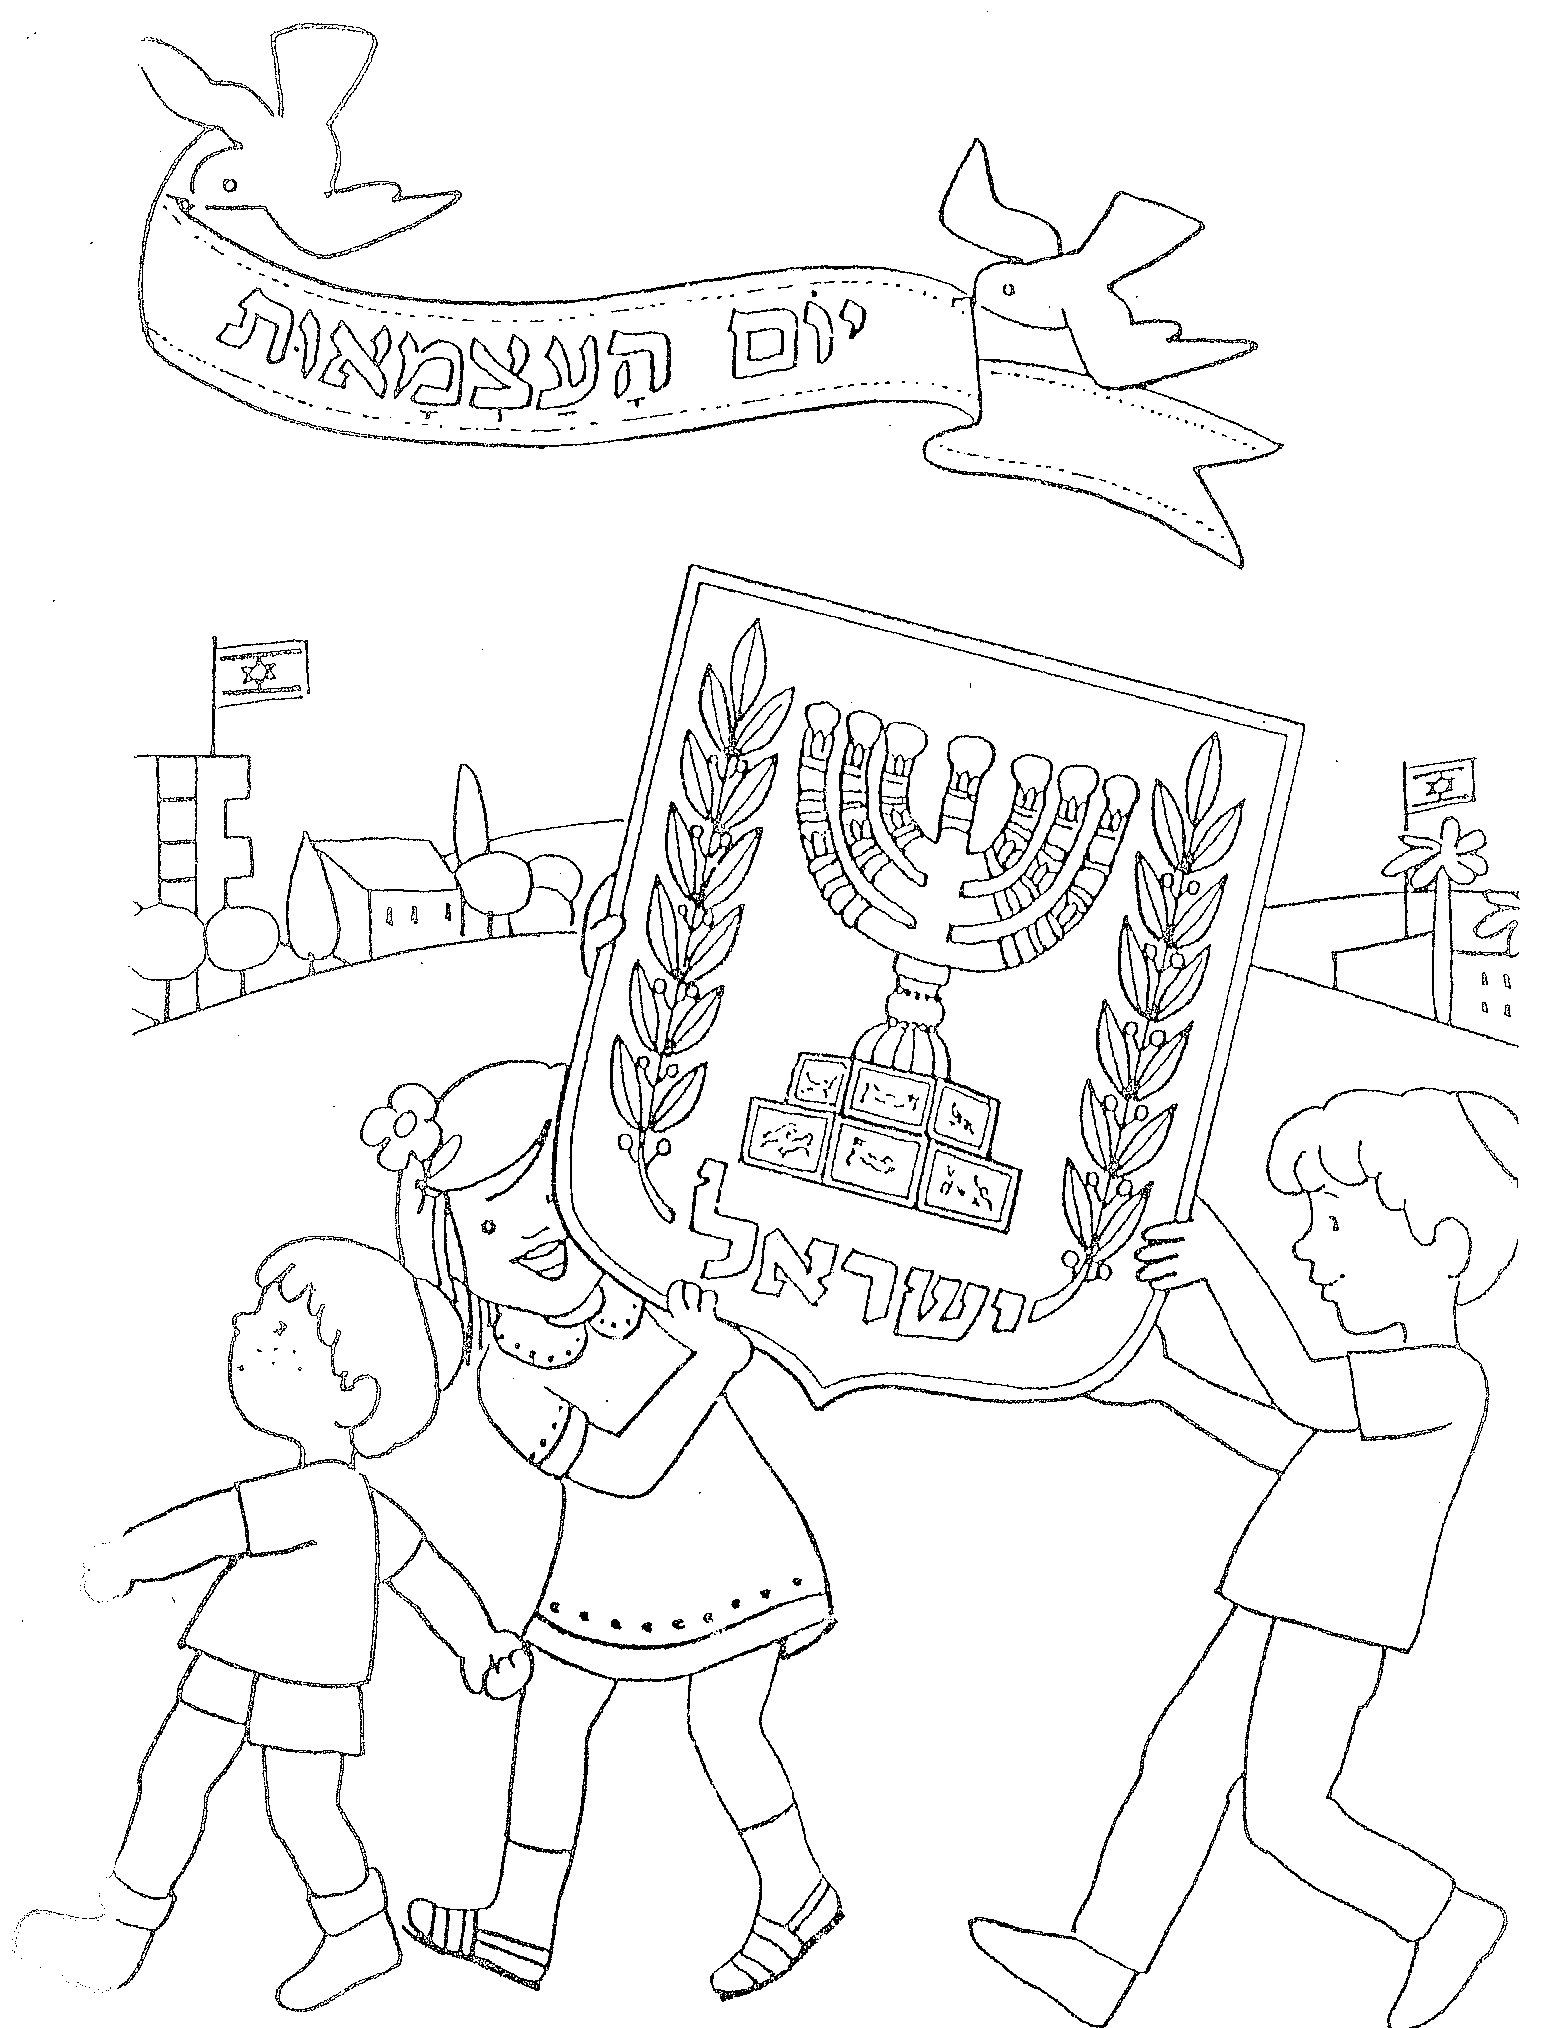 coloring pages : Independence Day Coloring Sheets Art Israel Coloring  Worksheet Independence Day Coloring Sheets ~ affiliateprogrambook.com